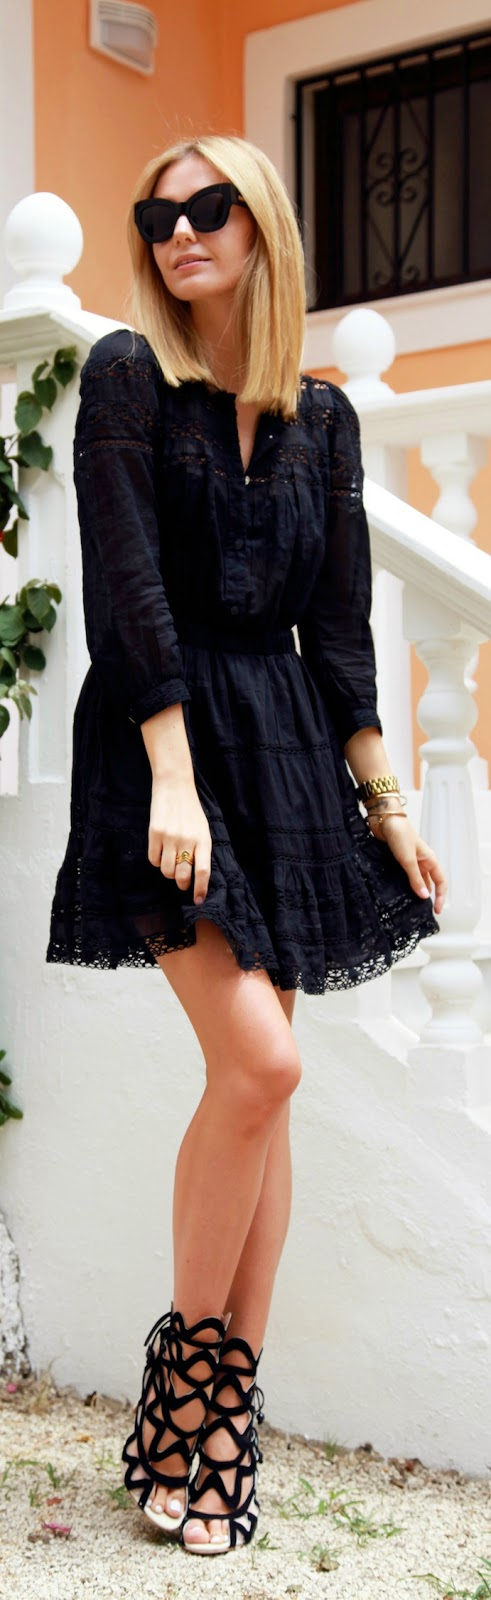 Causal Black Lace Dress with Hot Heels | Chic Outfits